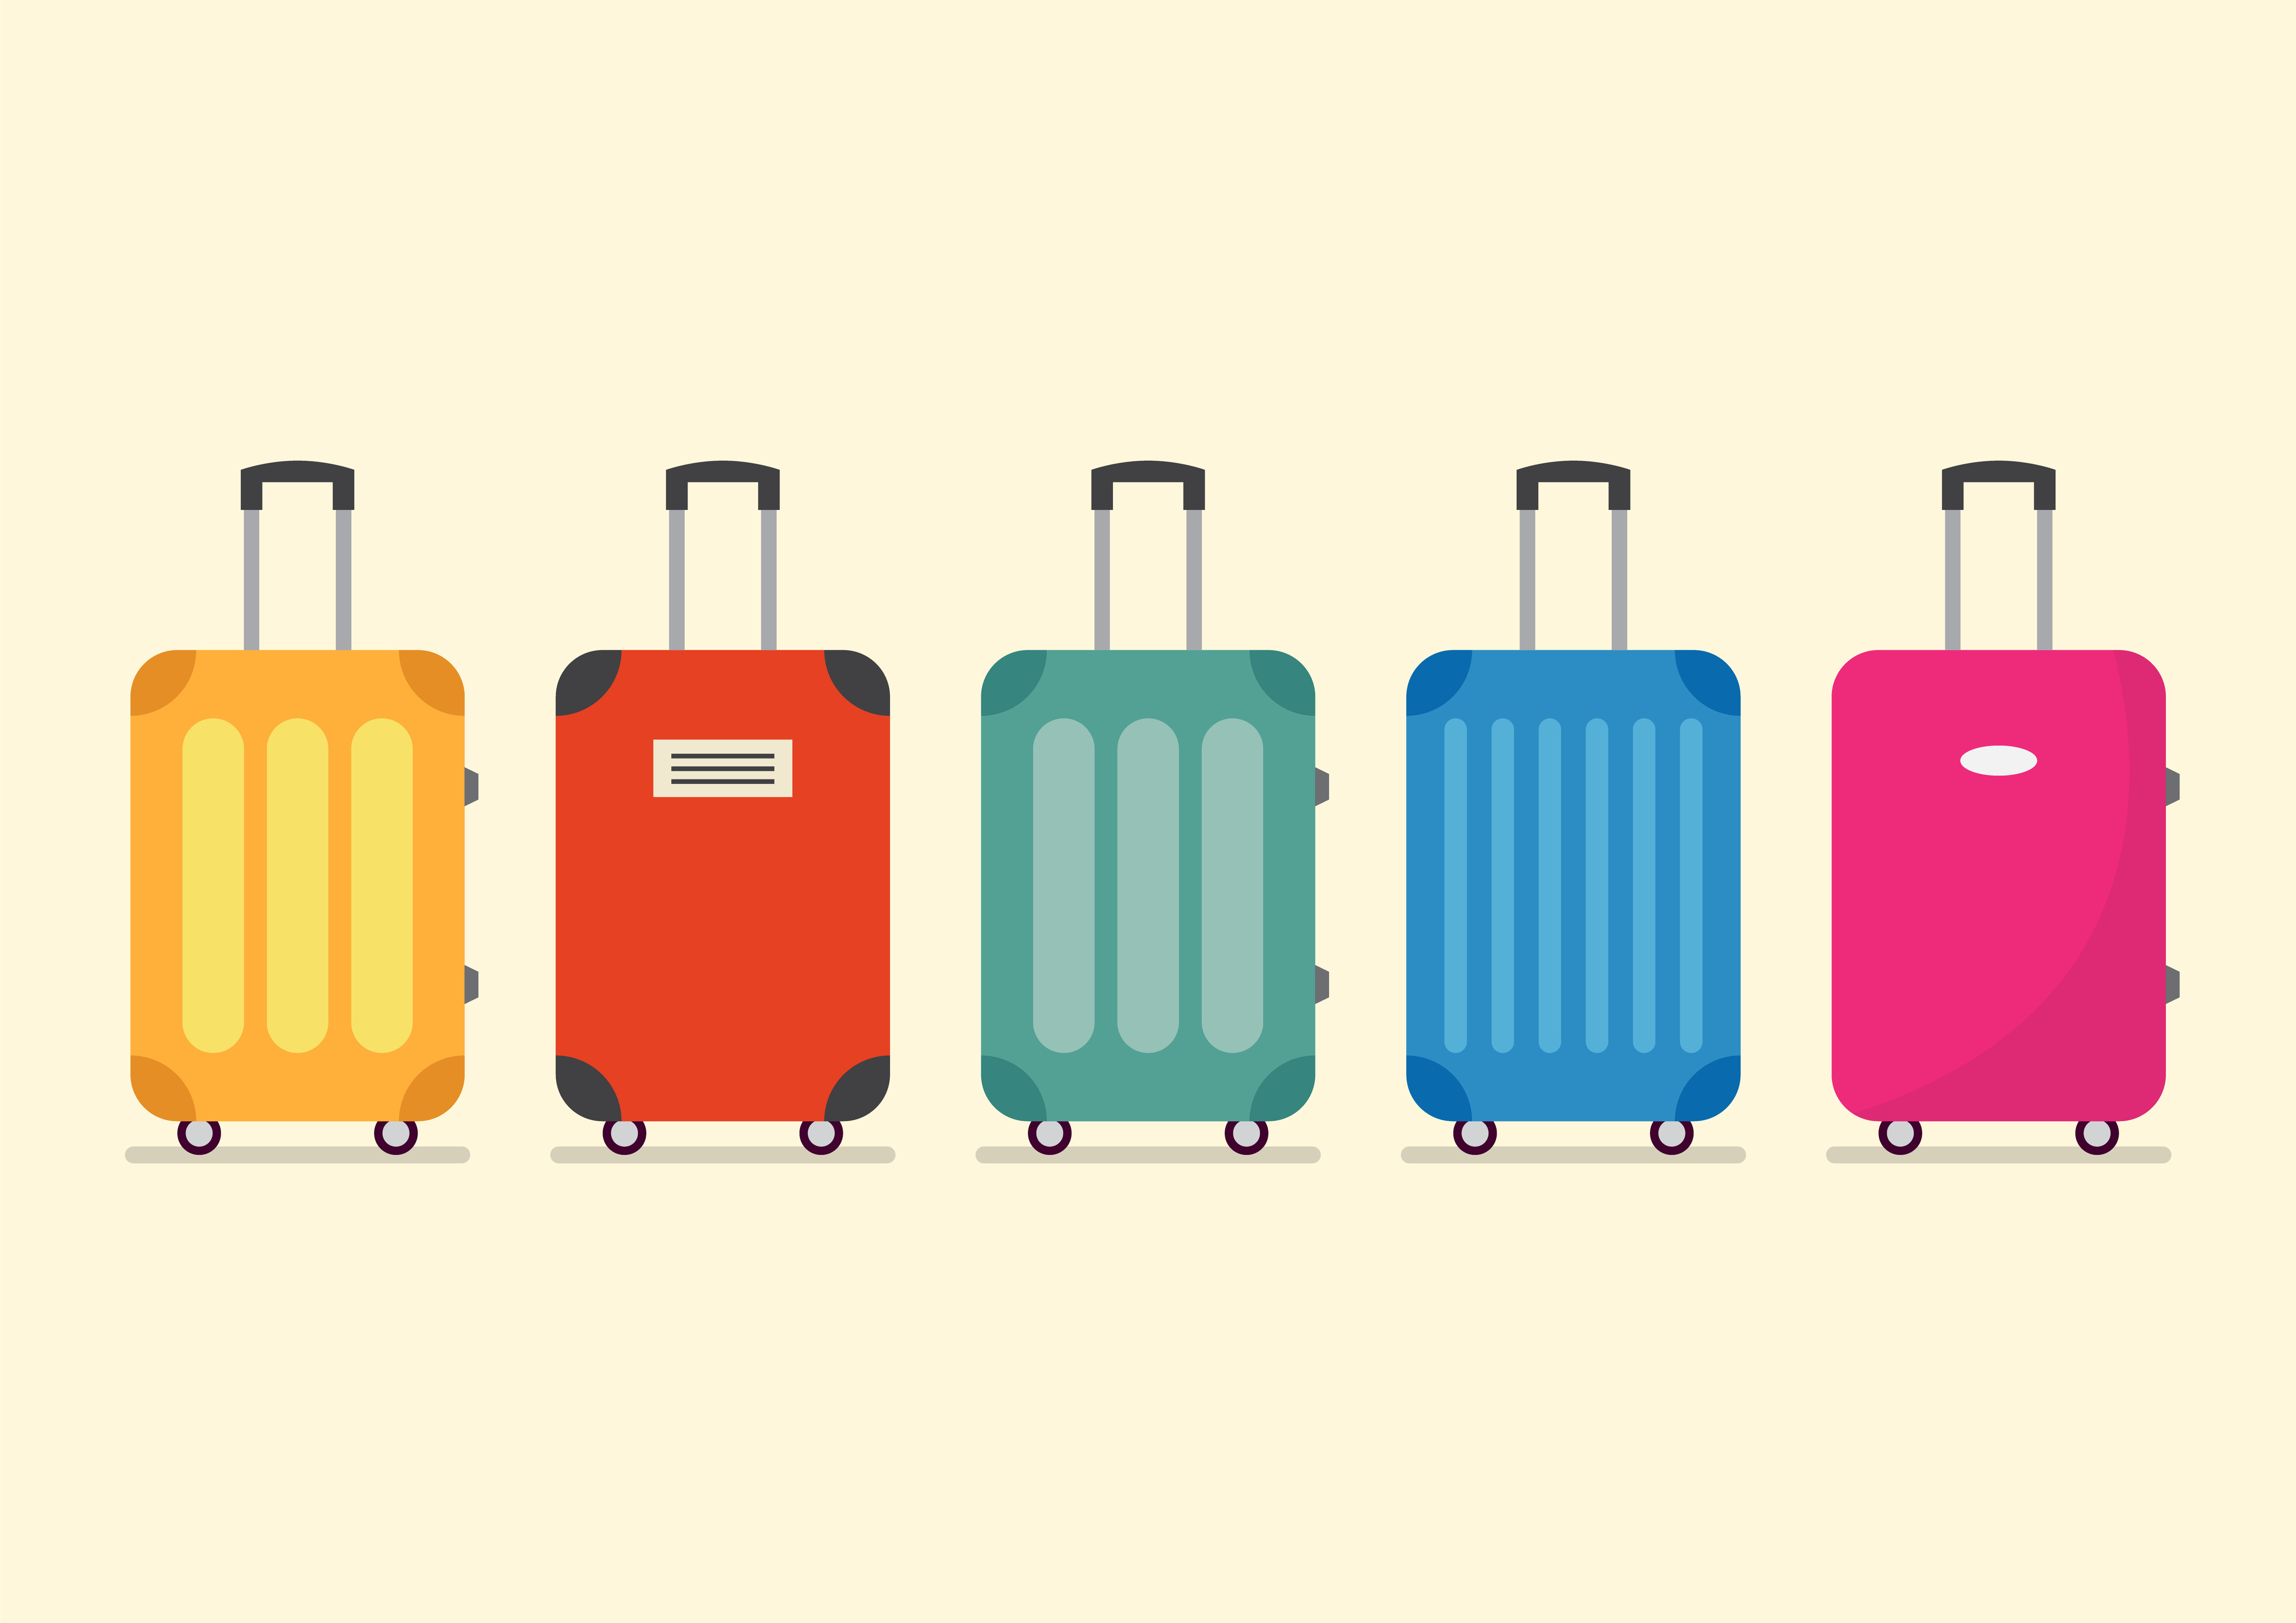 Travel luggage set for vacation and journey. Vector illustration